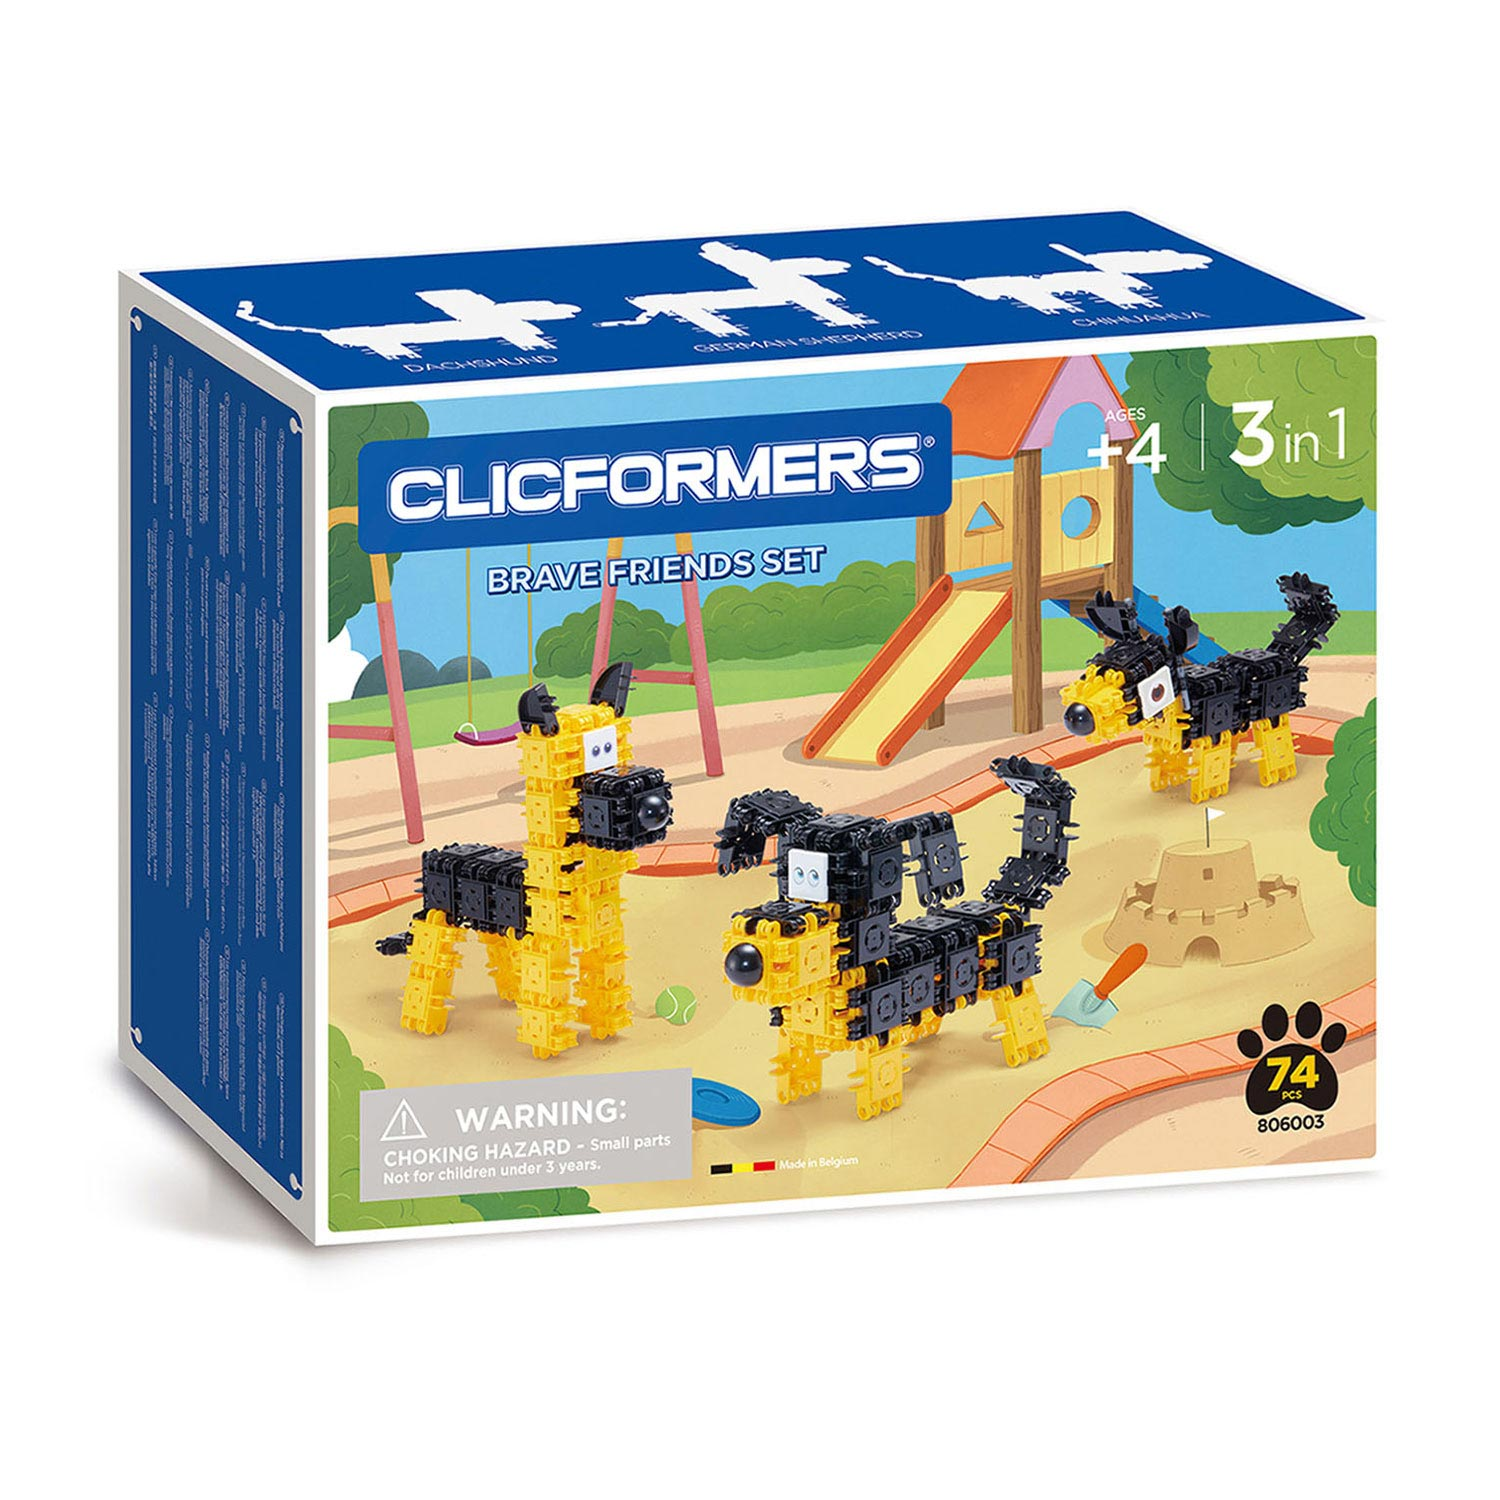 Clicformers Brace Friends Set, 74dlg.